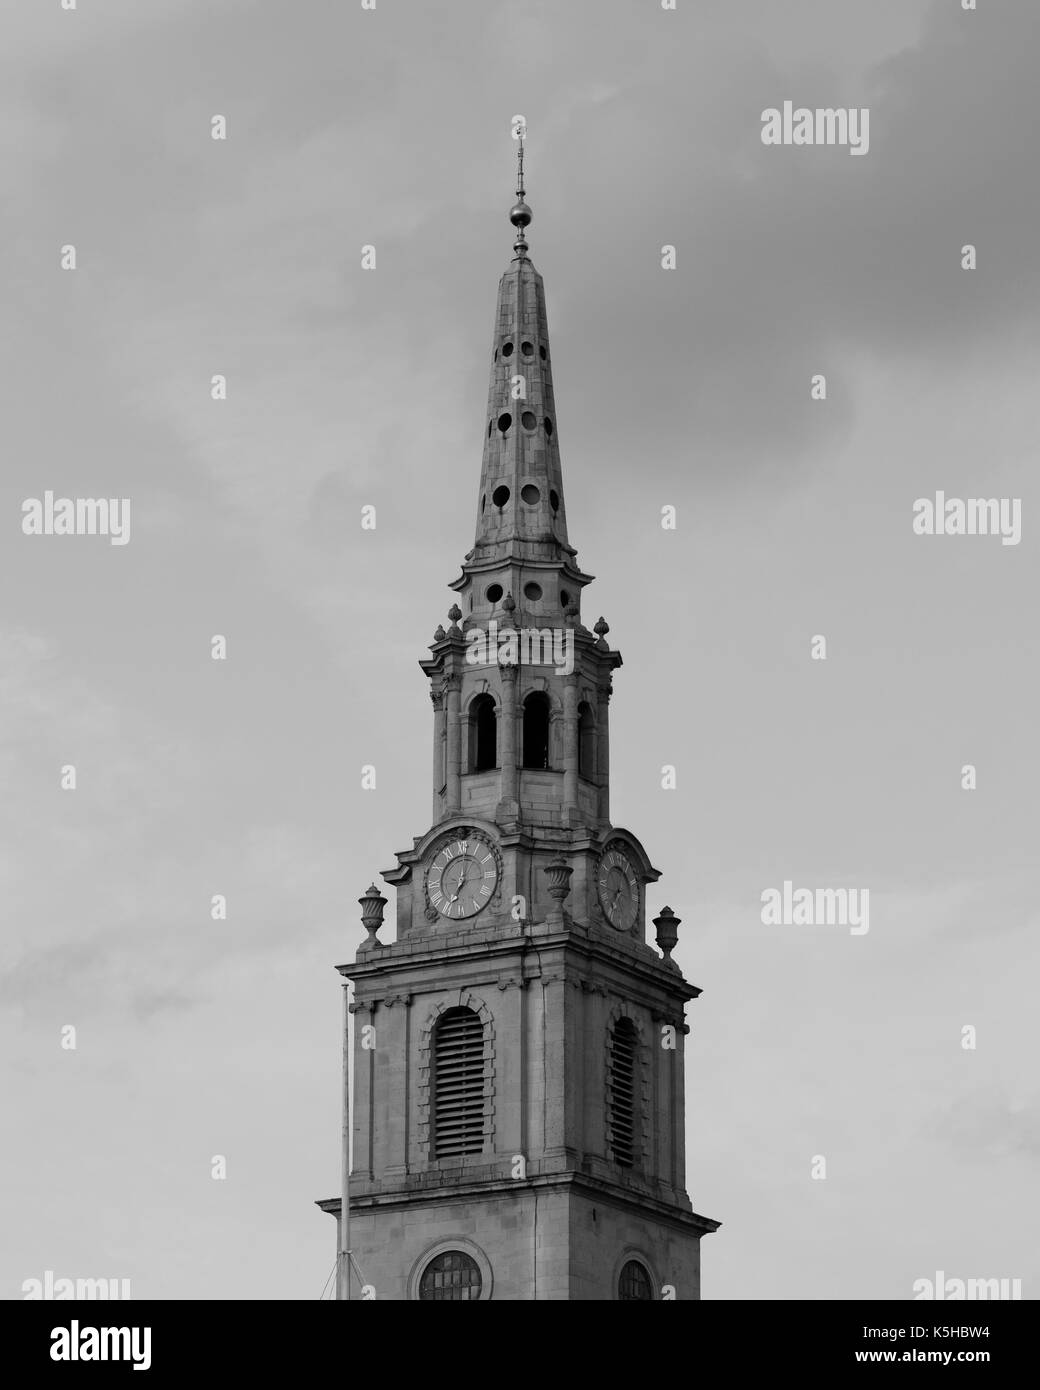 Church spire of St Martin-in-the-Fields at Trafalgar Square, London, UK in black and white - Stock Image